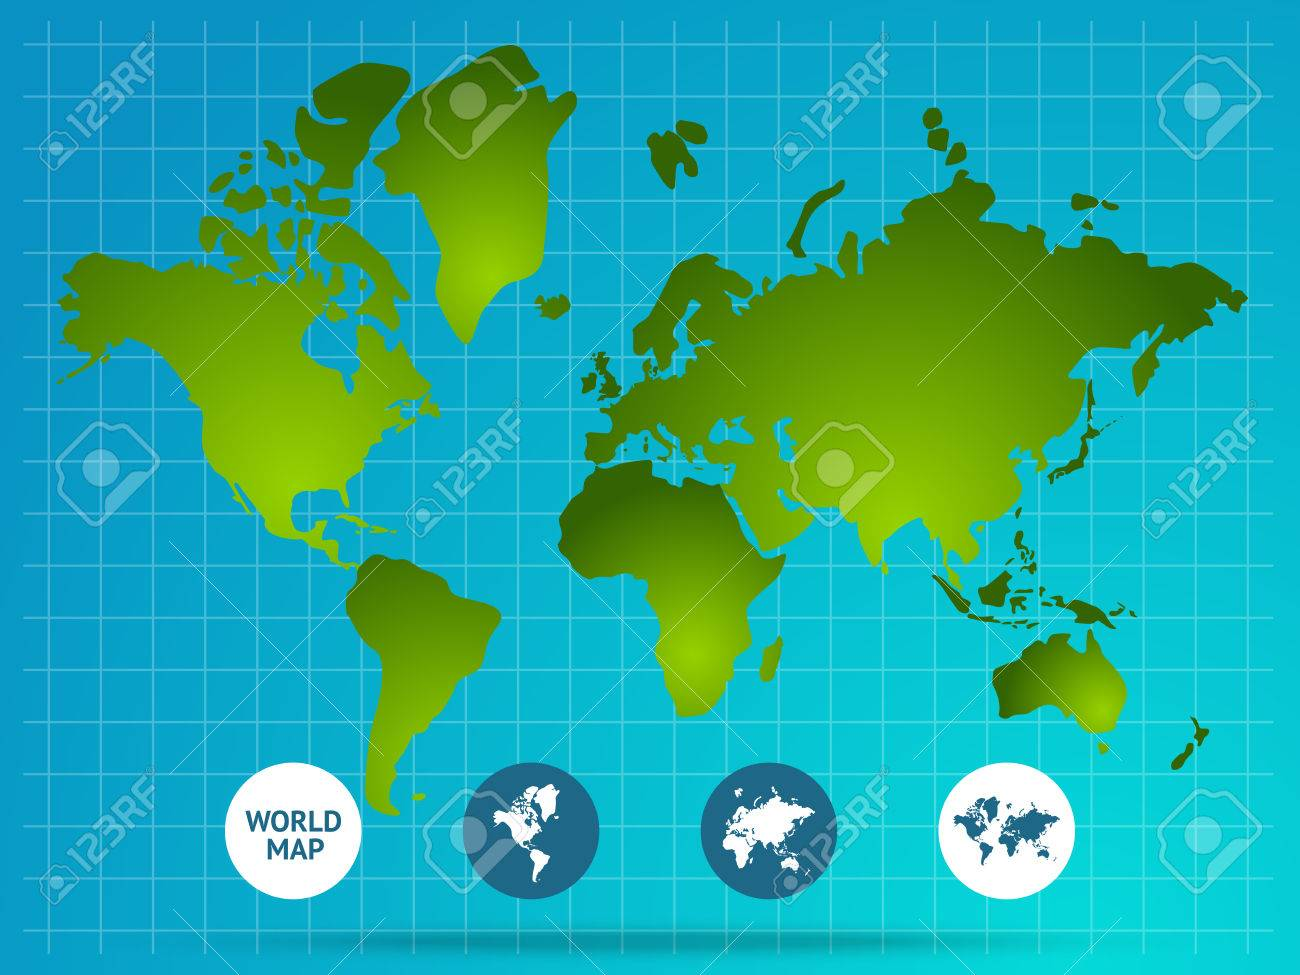 World map page of website with green continents grid buttons vector world map page of website with green continents grid buttons at bottom on blue background vector illustration gumiabroncs Gallery